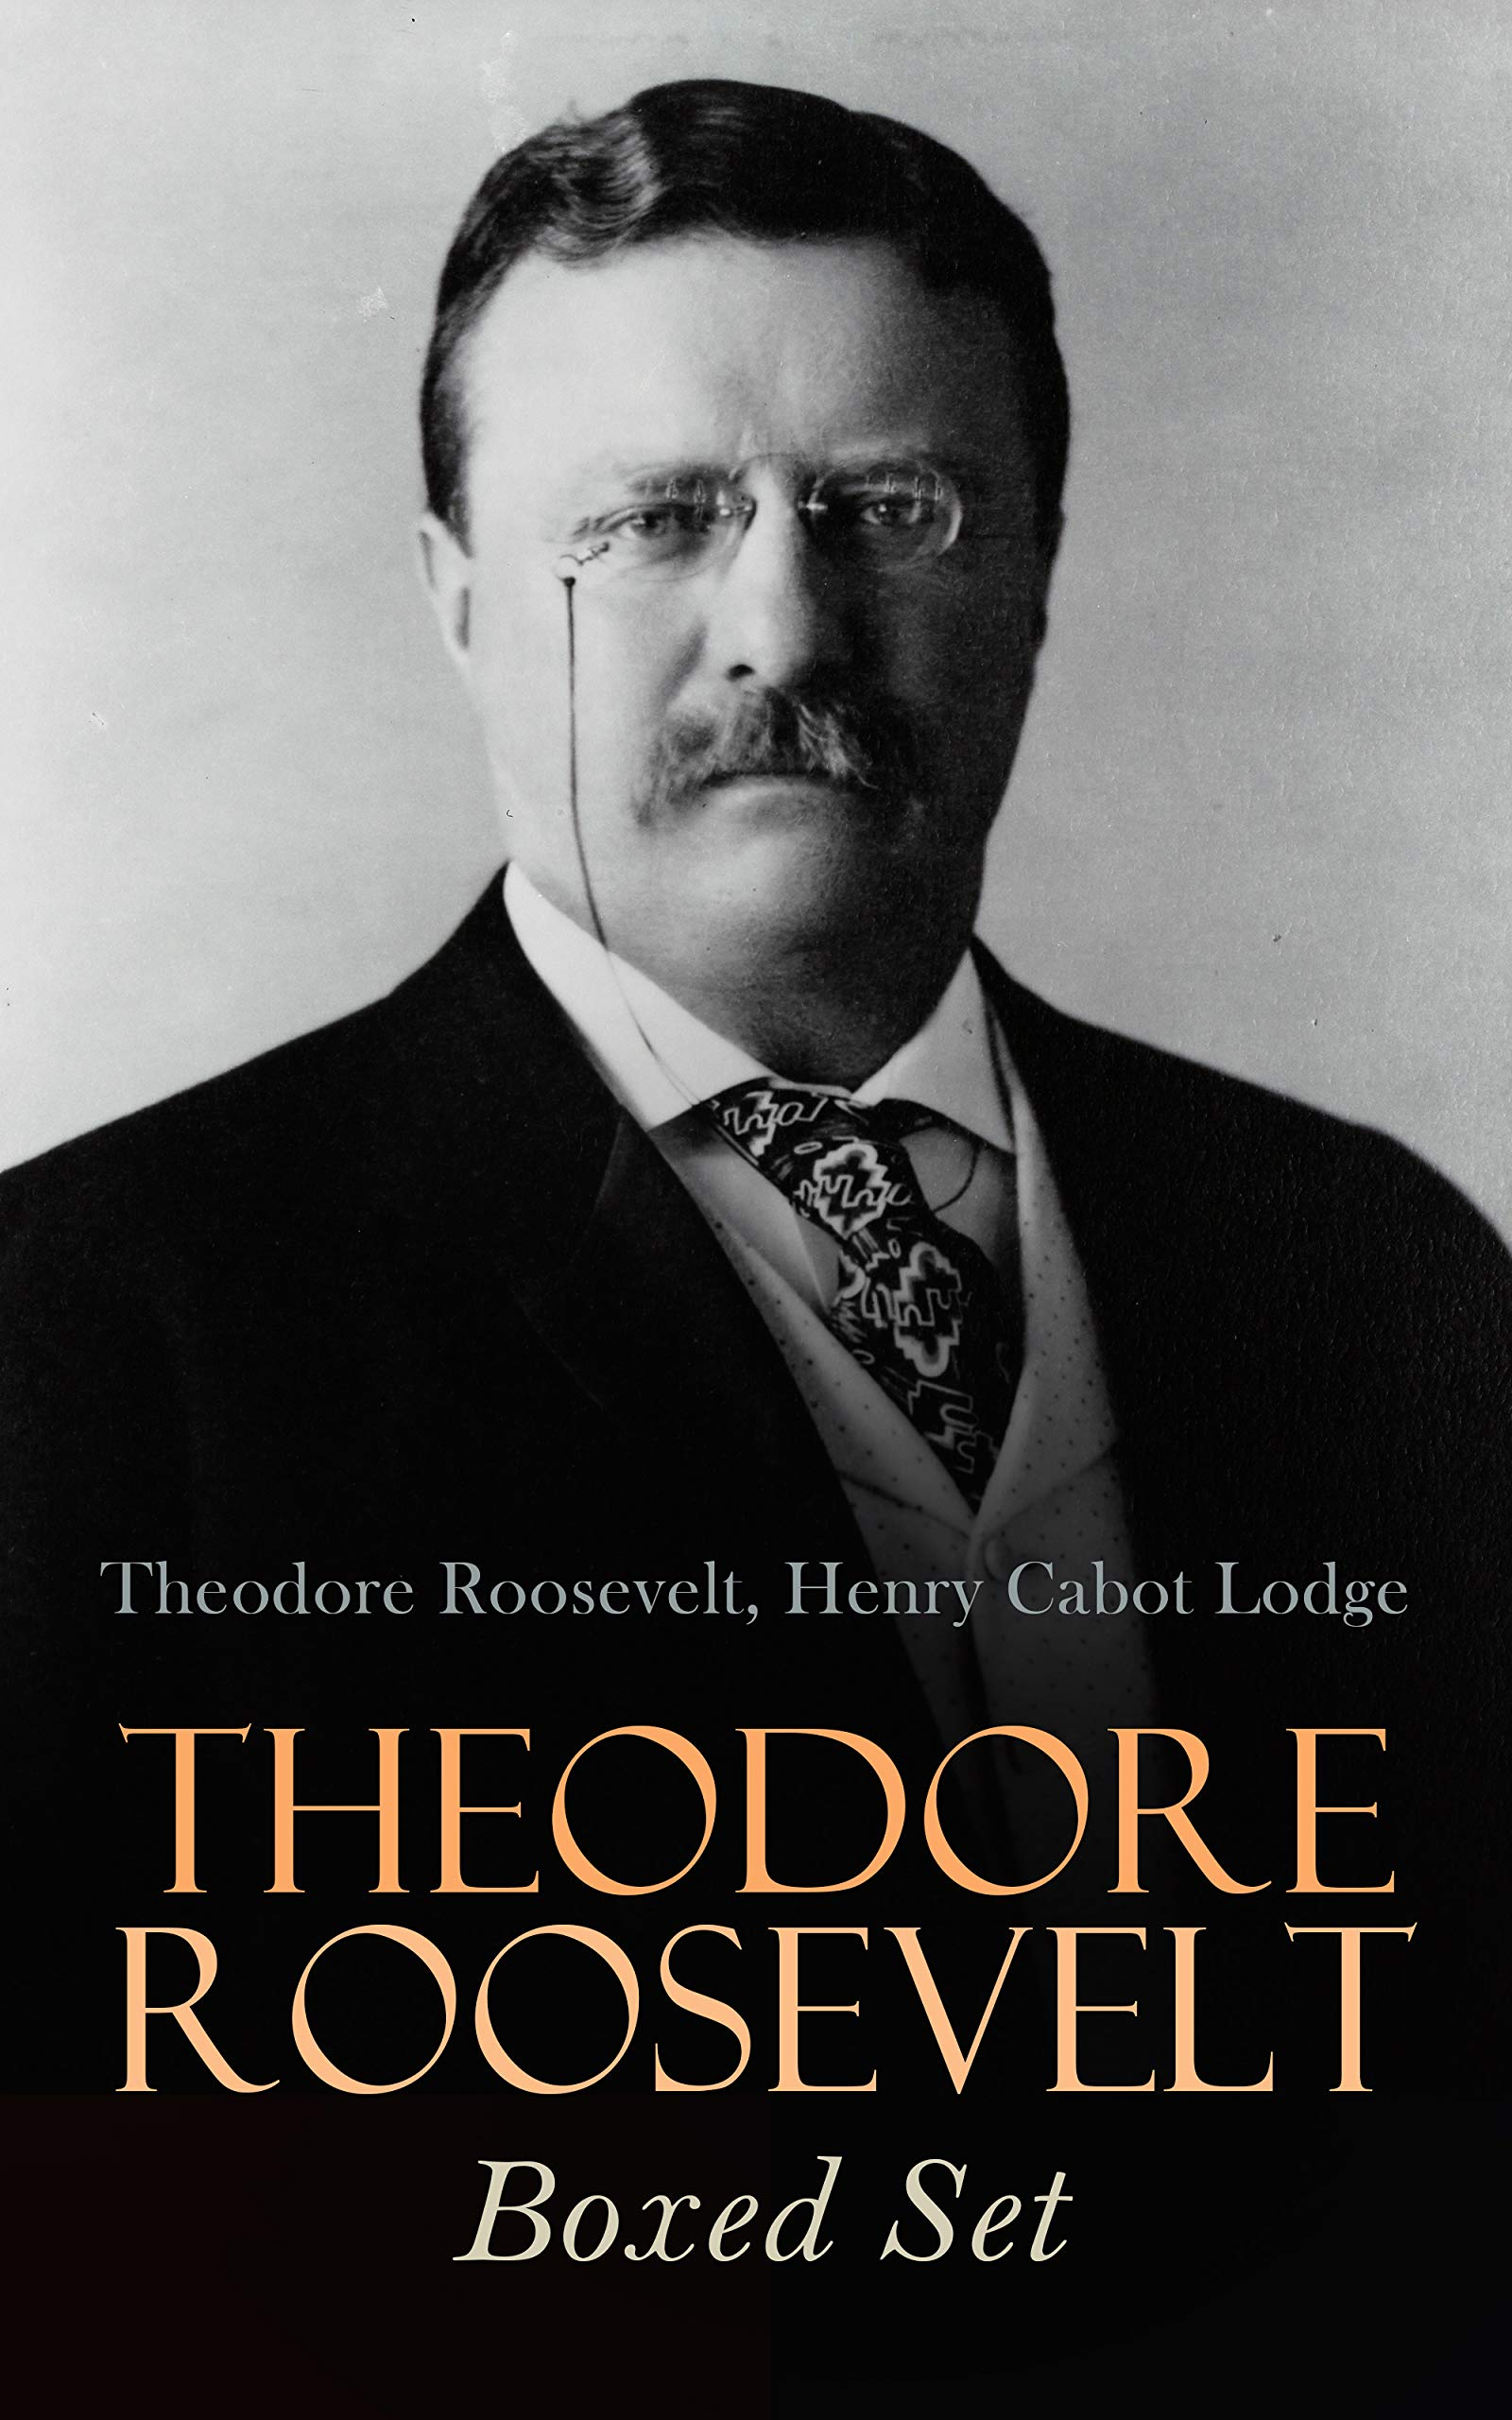 THEODORE ROOSEVELT Boxed Set: Memoirs, History Books, Biographies, Essays, Speeches & Executive Orders